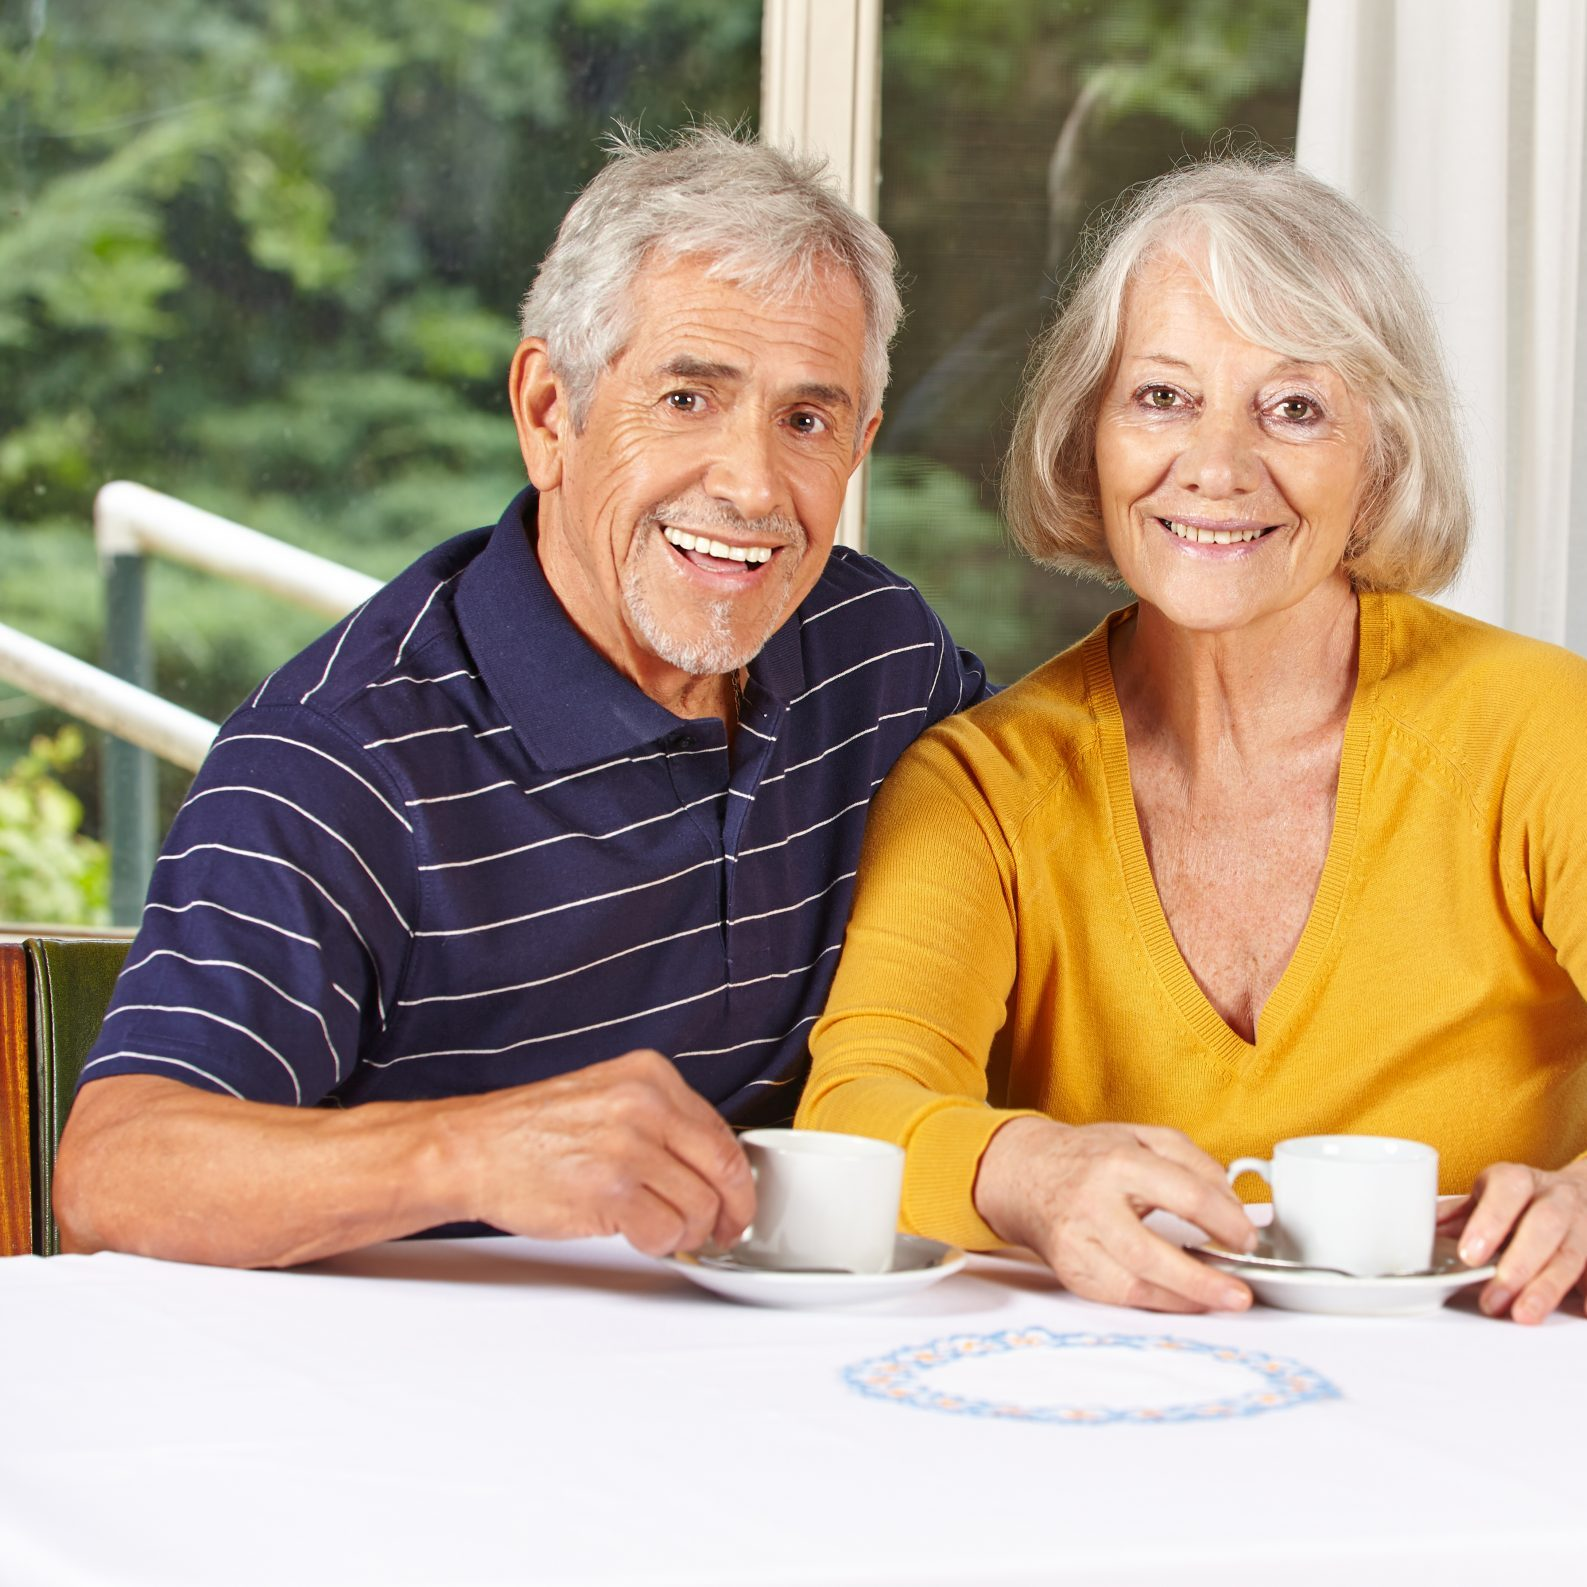 LIFELINE – Nutrition with a system | Fit and healthy into old age